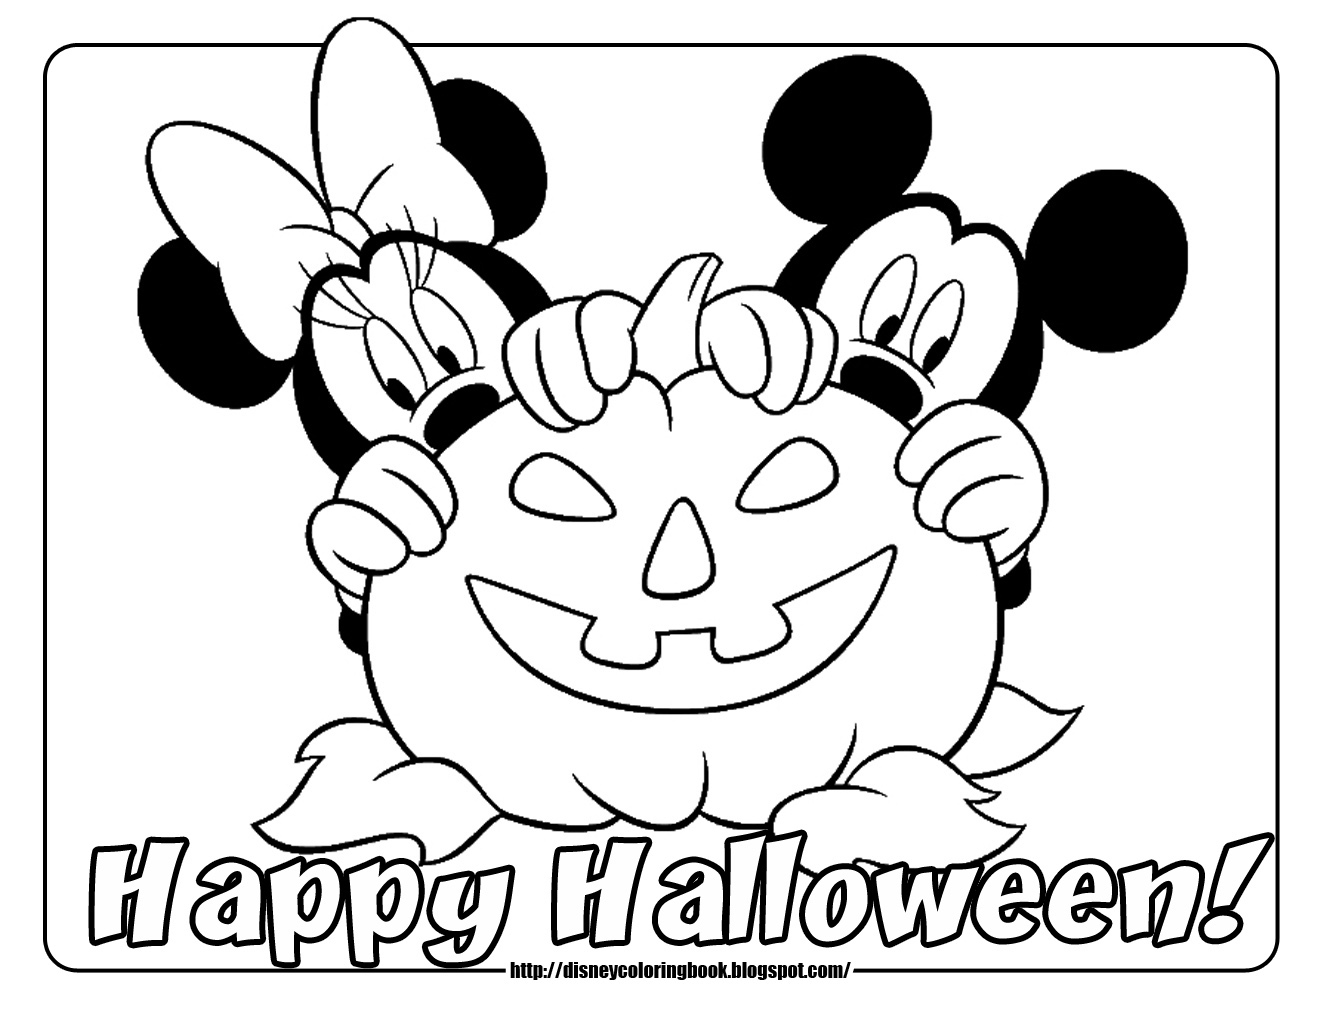 Disney Halloween Coloring Pages Pdf : Mickey and friends halloween free disney